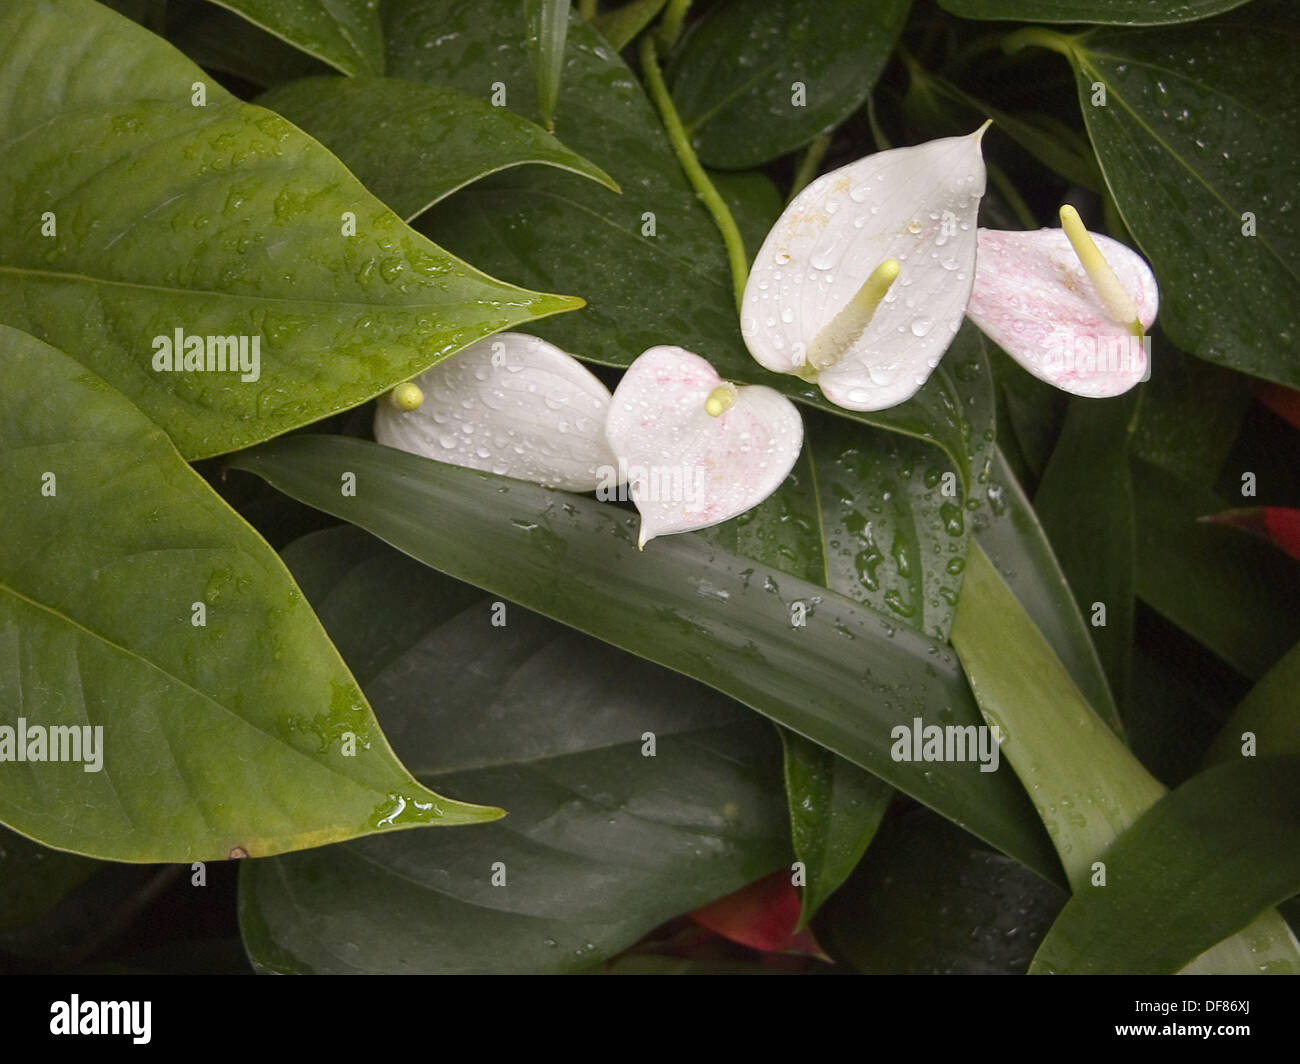 White Anthurium Flowers With Green Leaves With Water Drops Stock